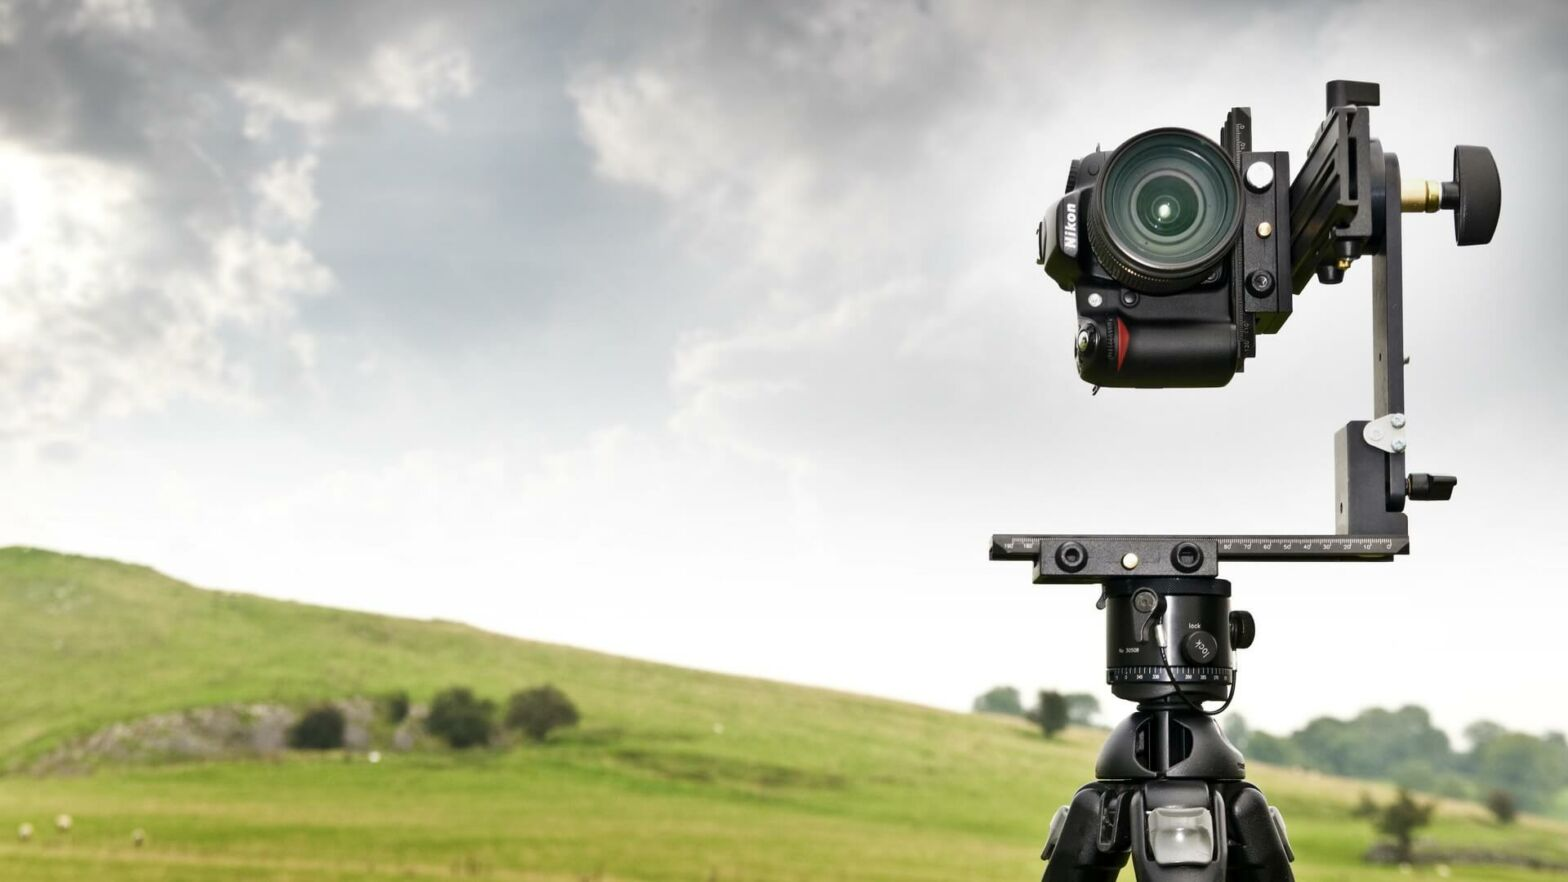 Best Tripod To Buy - Featured Image